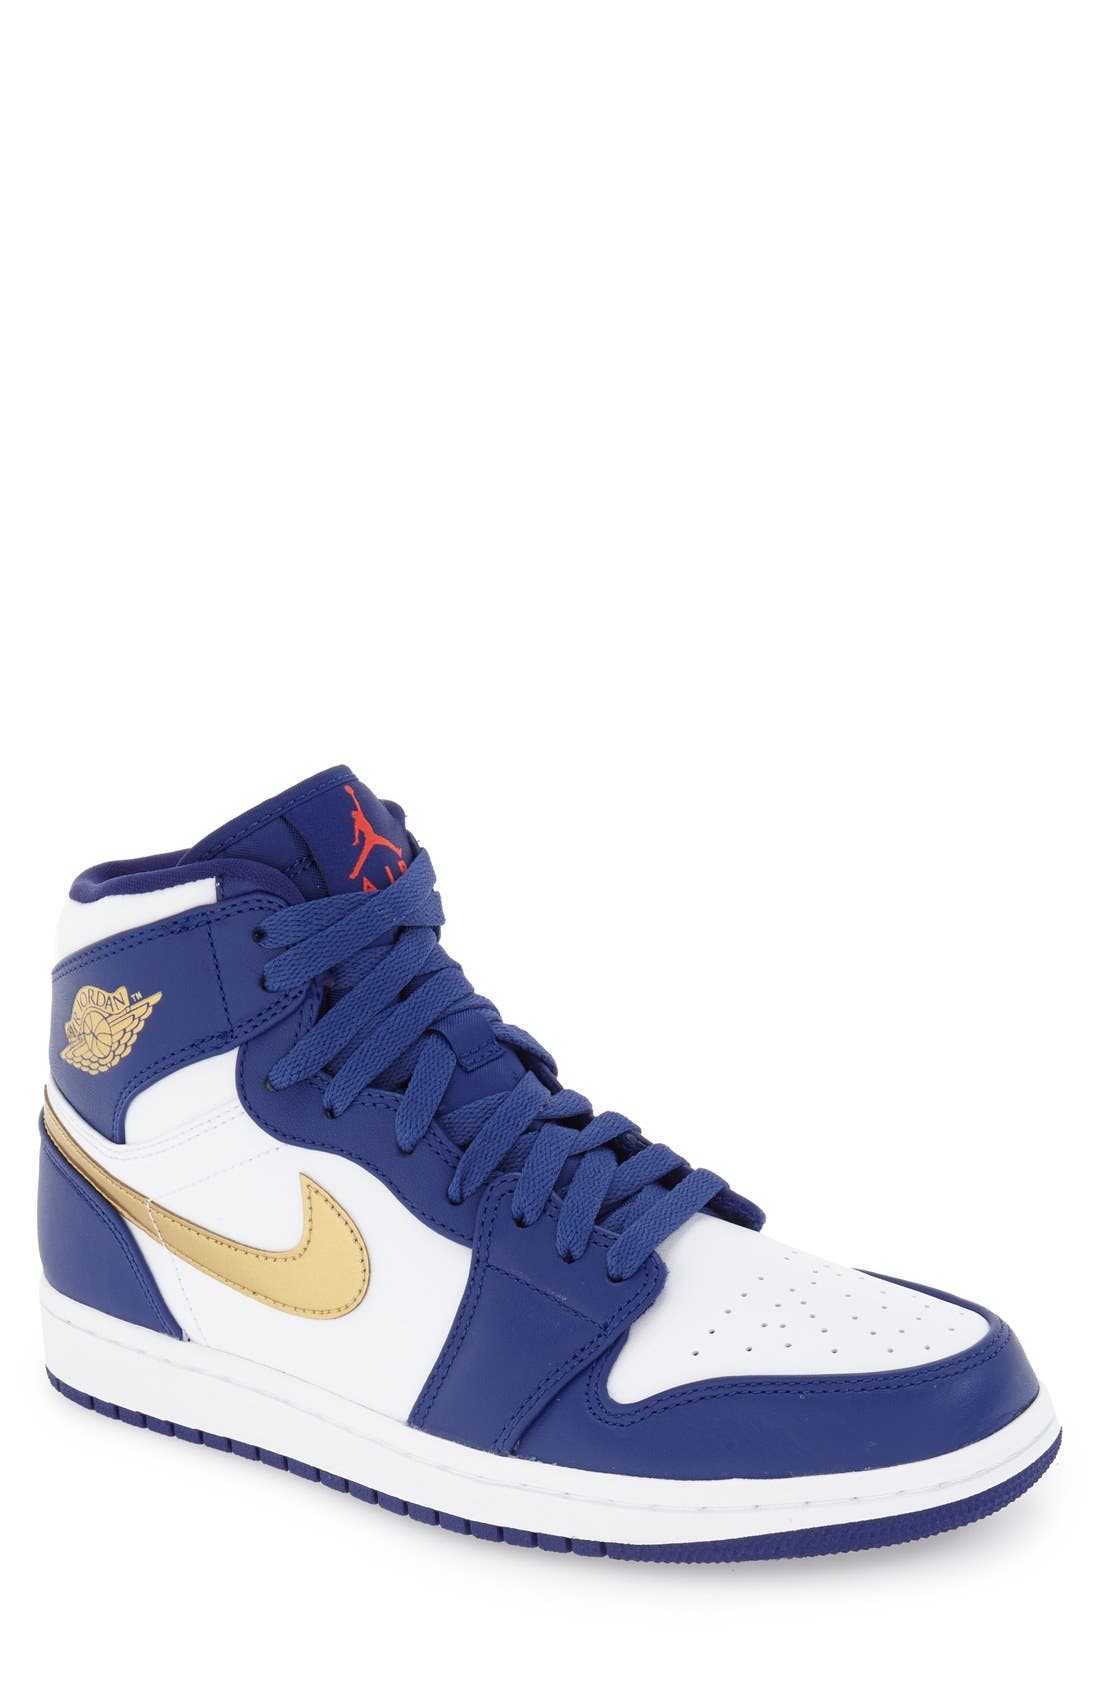 Alternate Image 1 Selected - Nike 'Air Jordan 1 Retro' High Top Sneaker (Men)